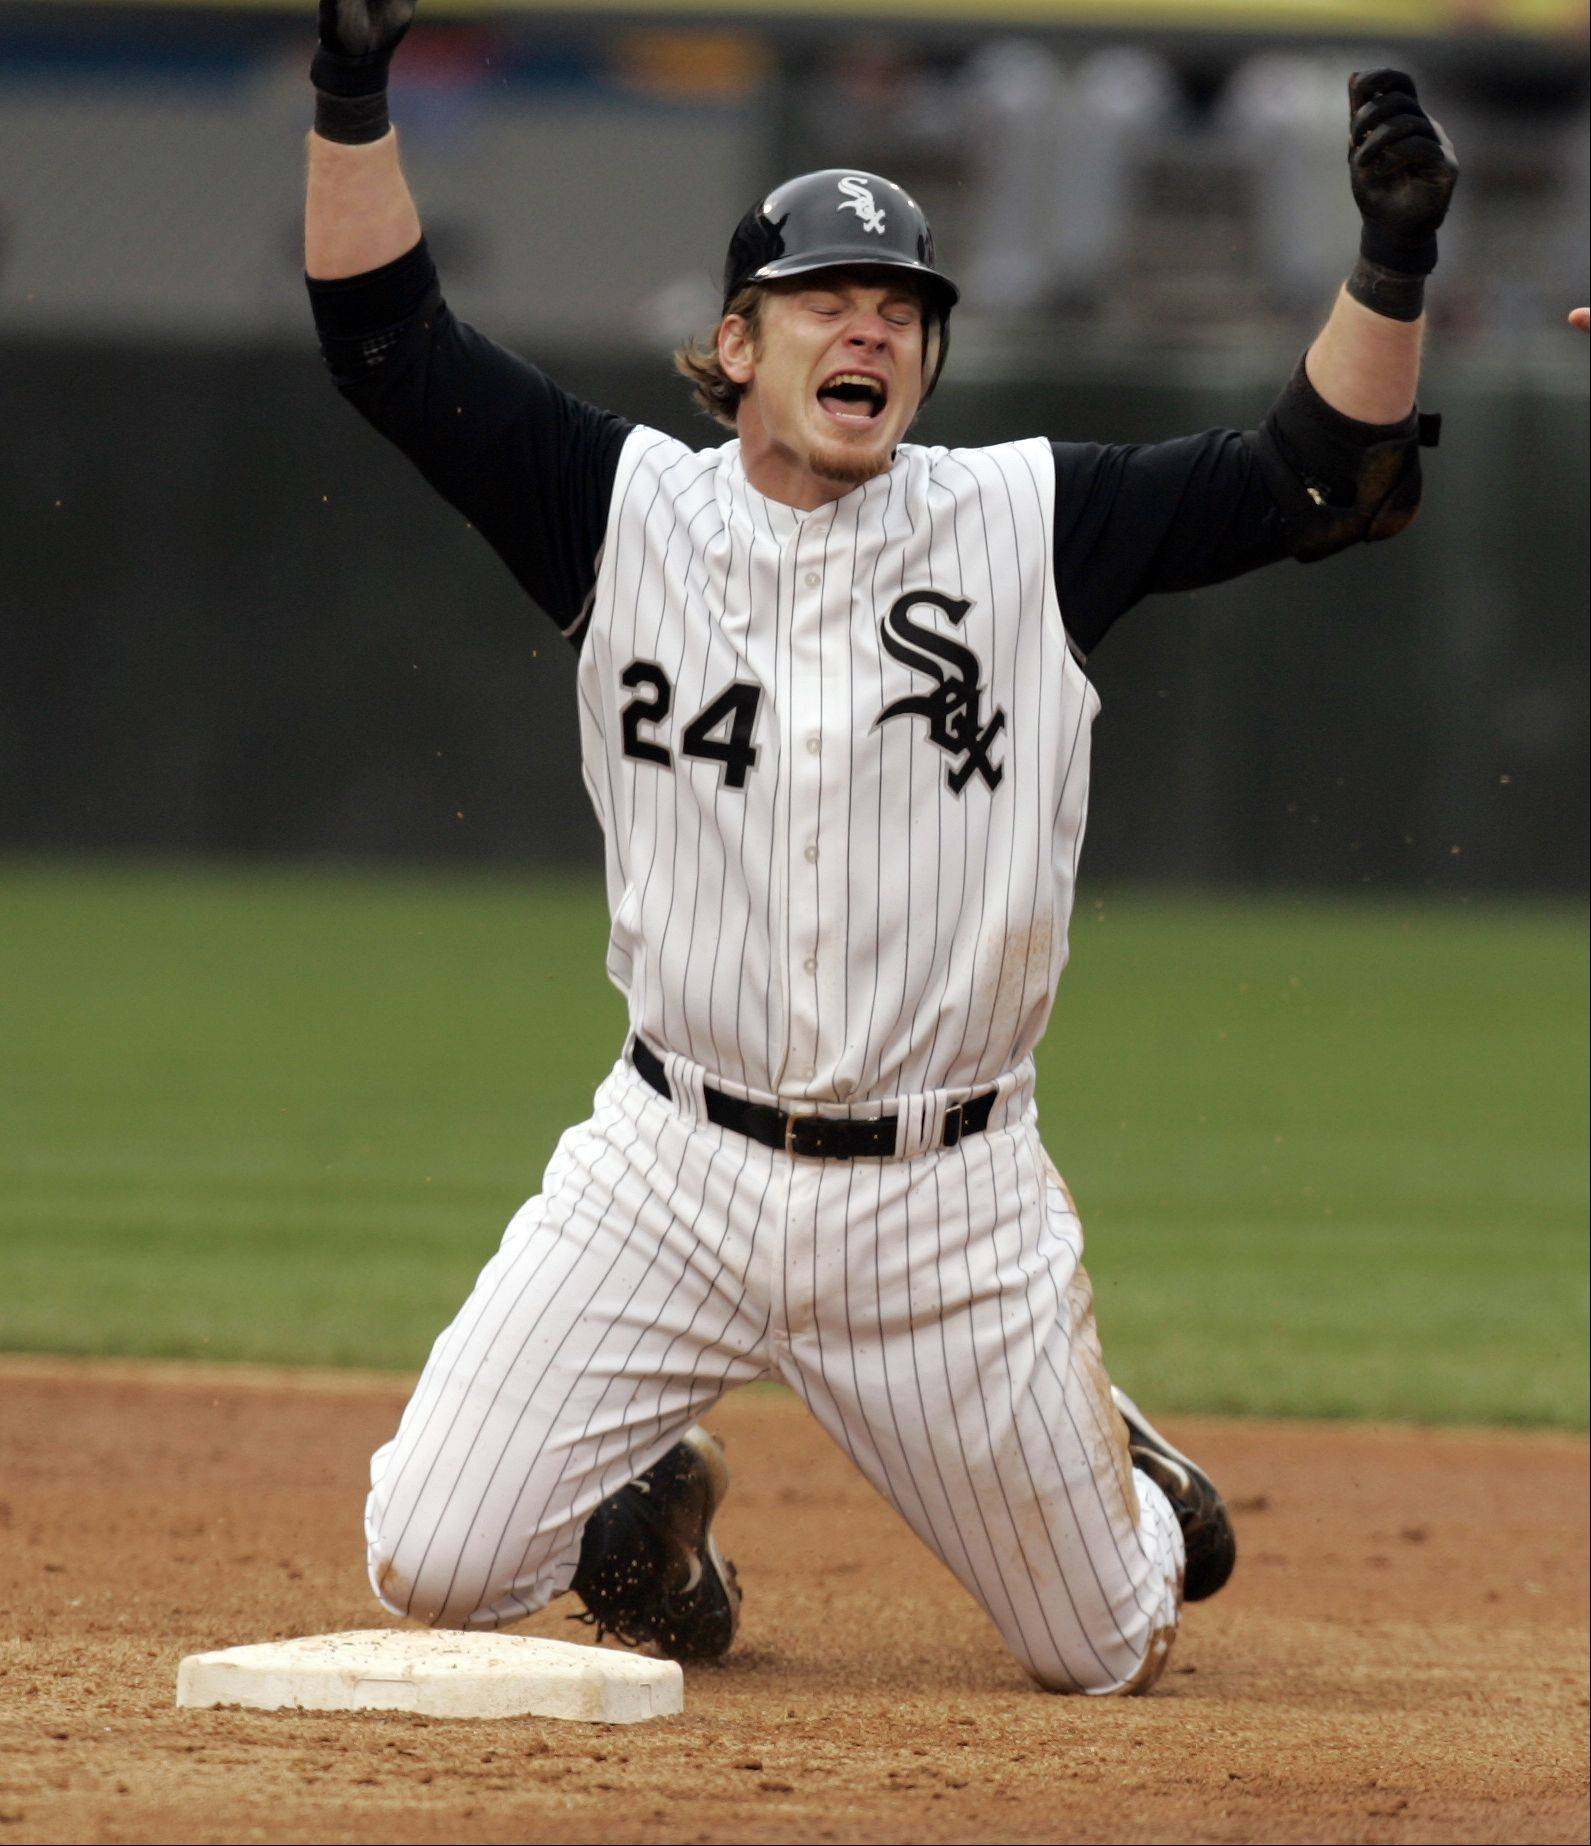 Joe Crede reacts after being called out at 2nd in the third inning trying for a double, Game one Chicago White Sox Vs Chicago Cubs at U.S. Cellular Field in Chicago. May 20, 2005.